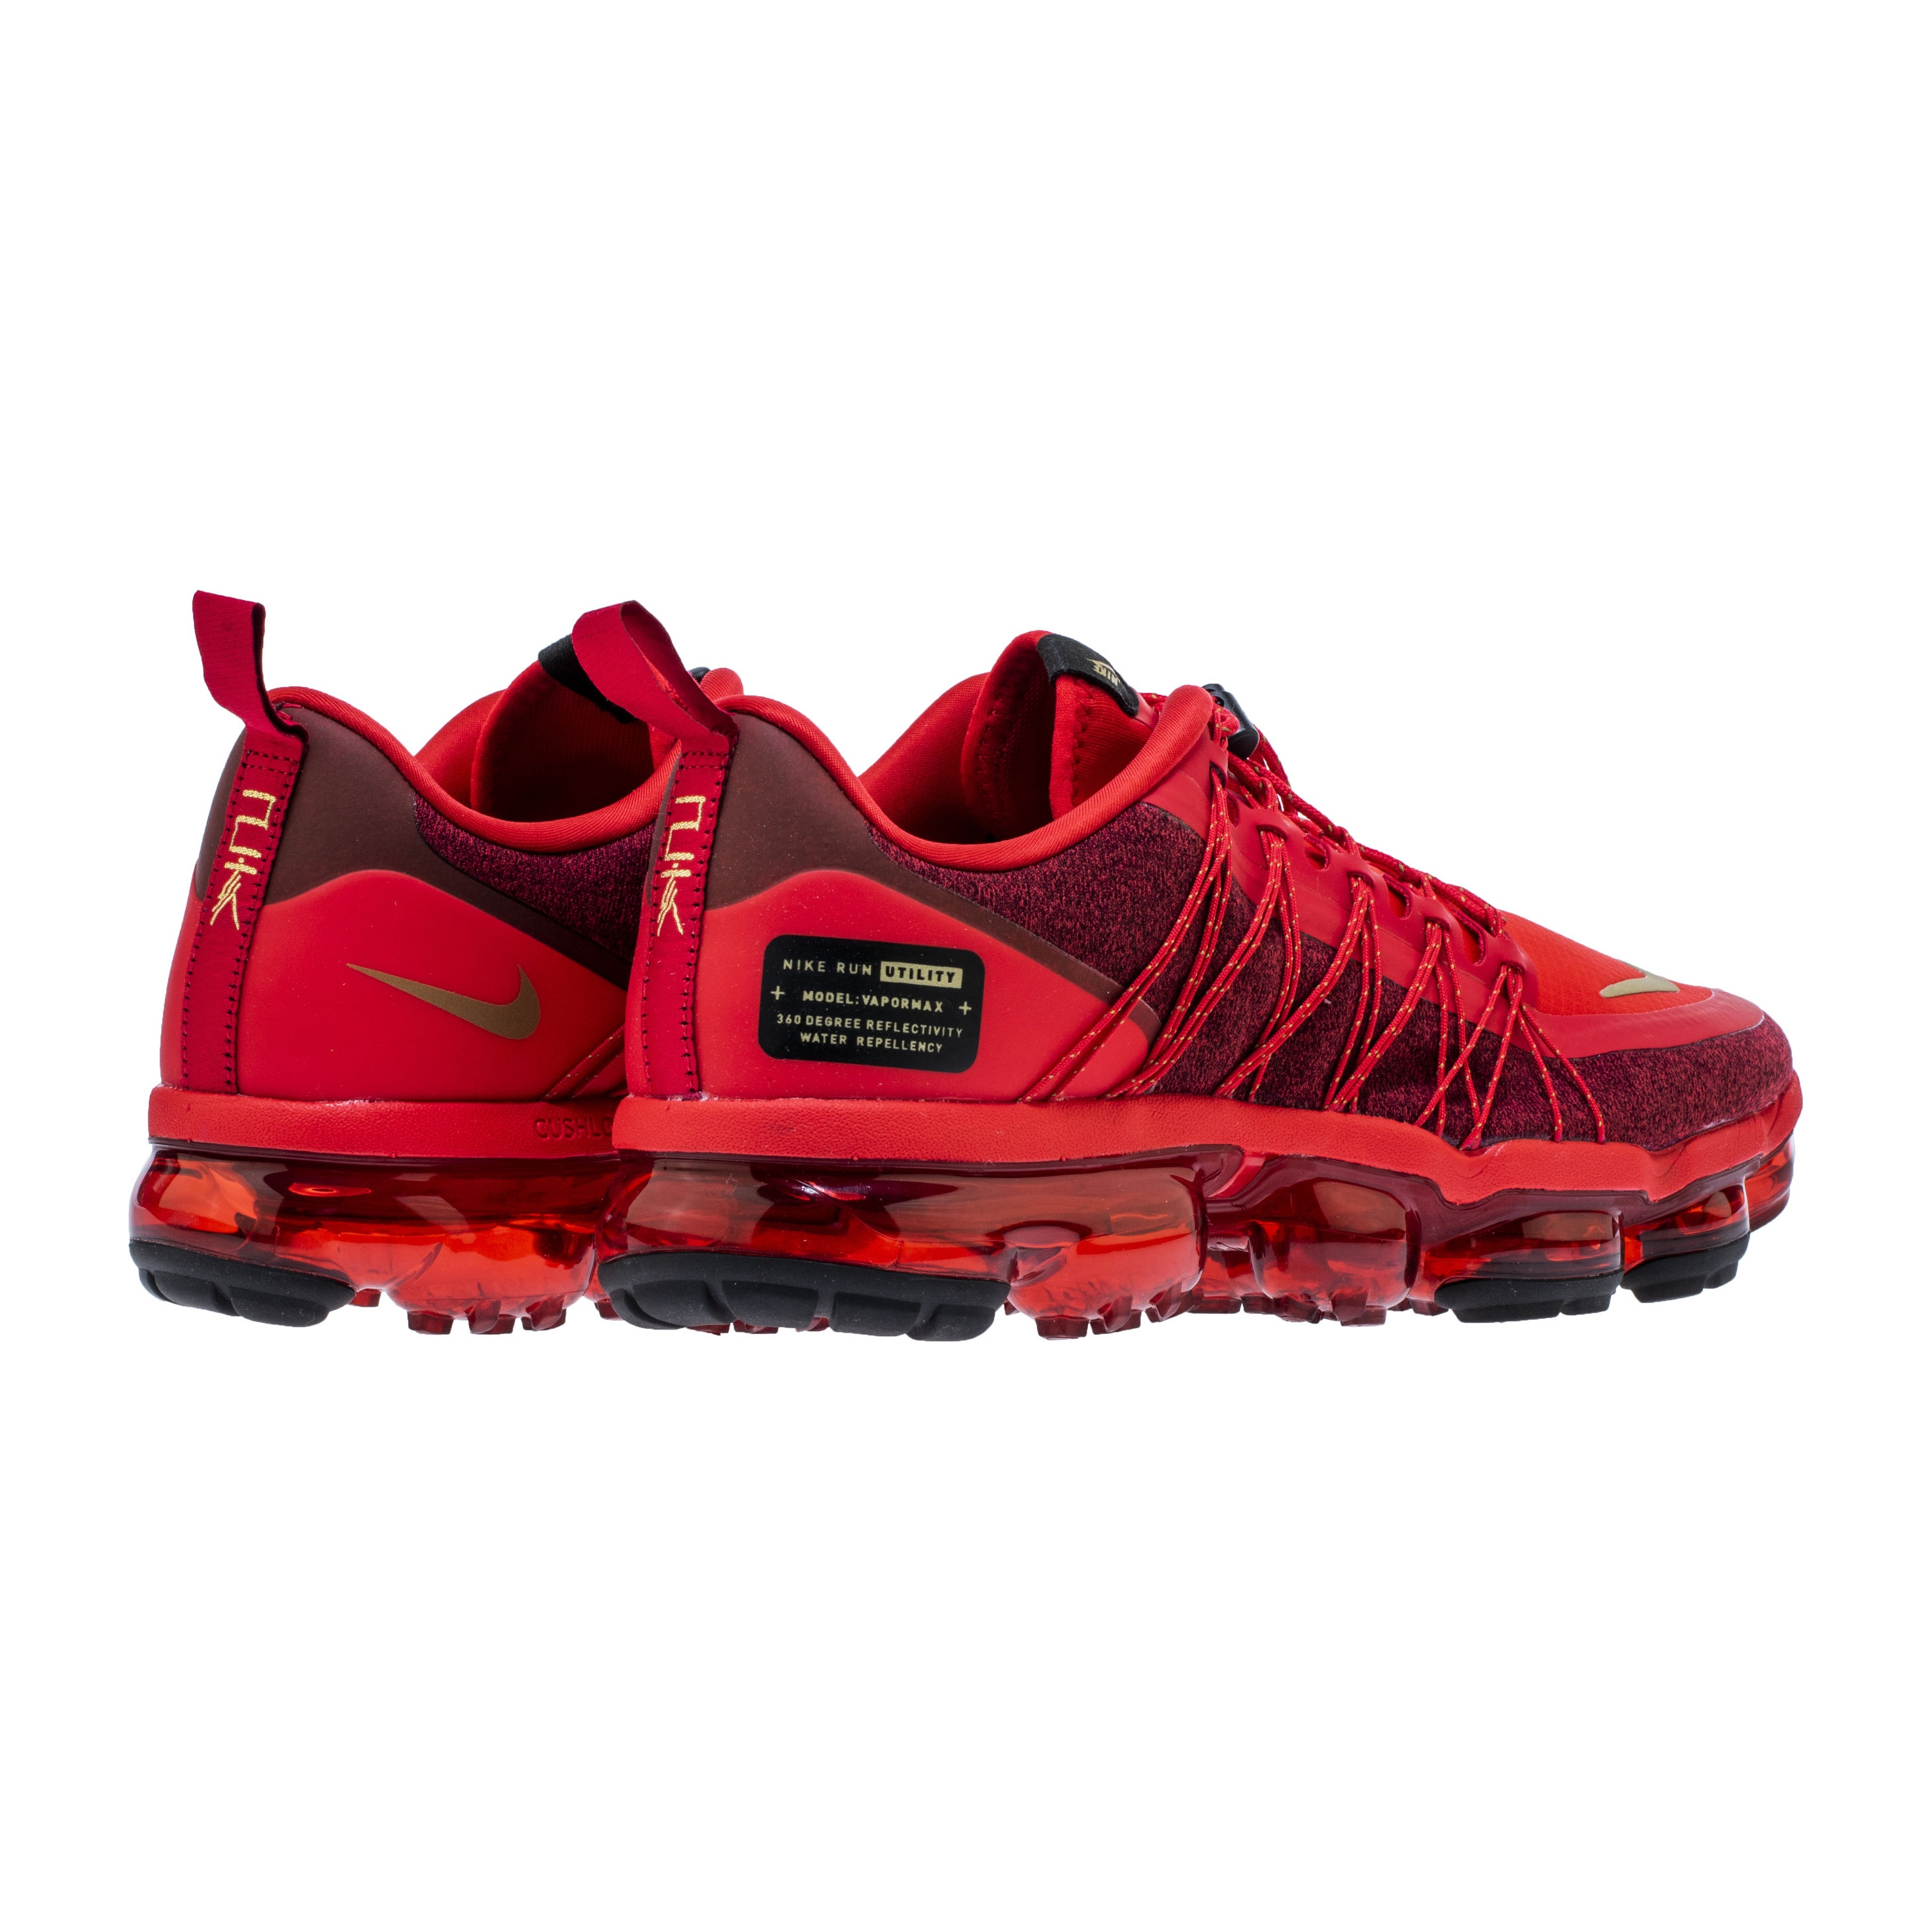 NIKE AIR VAPORMAX RUN UTILITY CANYON RED BLACK 2 - WearTesters d0a61cd43